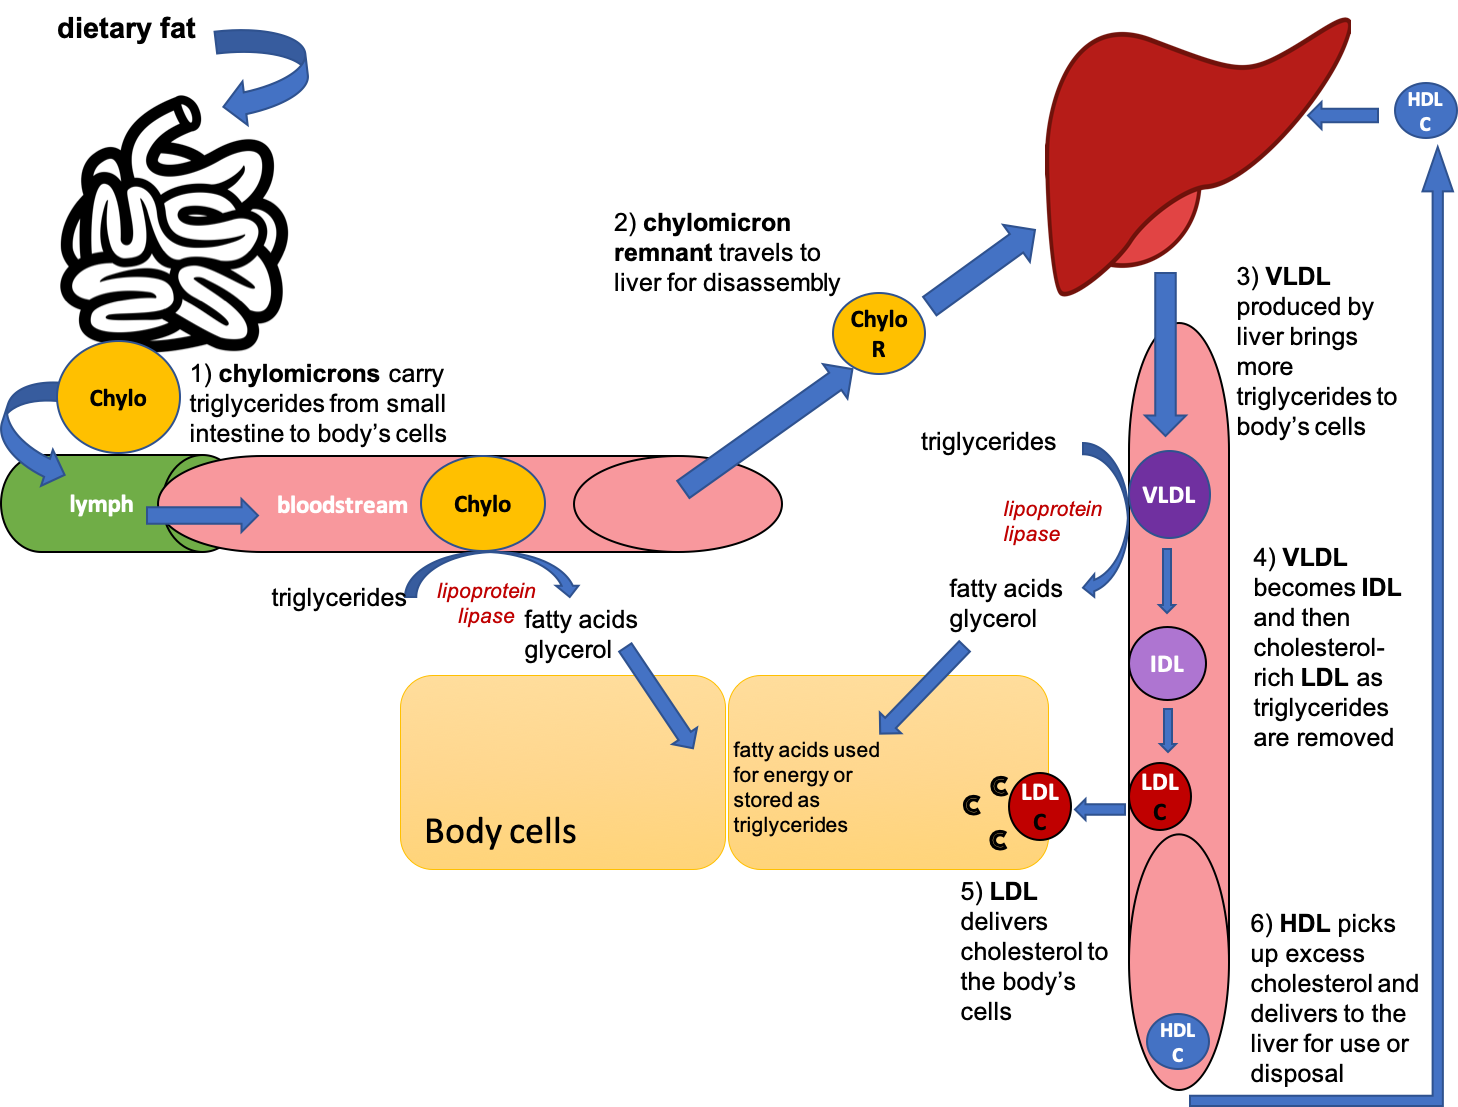 This cartoon diagram shows dietary fat entering the small intestine, being packaged in chylomicrons, and then being carried into the lymph and then bloodstream. Chylomicrons deliver triglycerides to the body's cells, and then chylomicron remnants travel to the liver. The liver produces VLDL, which also delivers triglycerides to the body's cells, and as triglycerides are removed, become IDL and LDL. HDL picks up excess cholesterol and returns it to the liver.